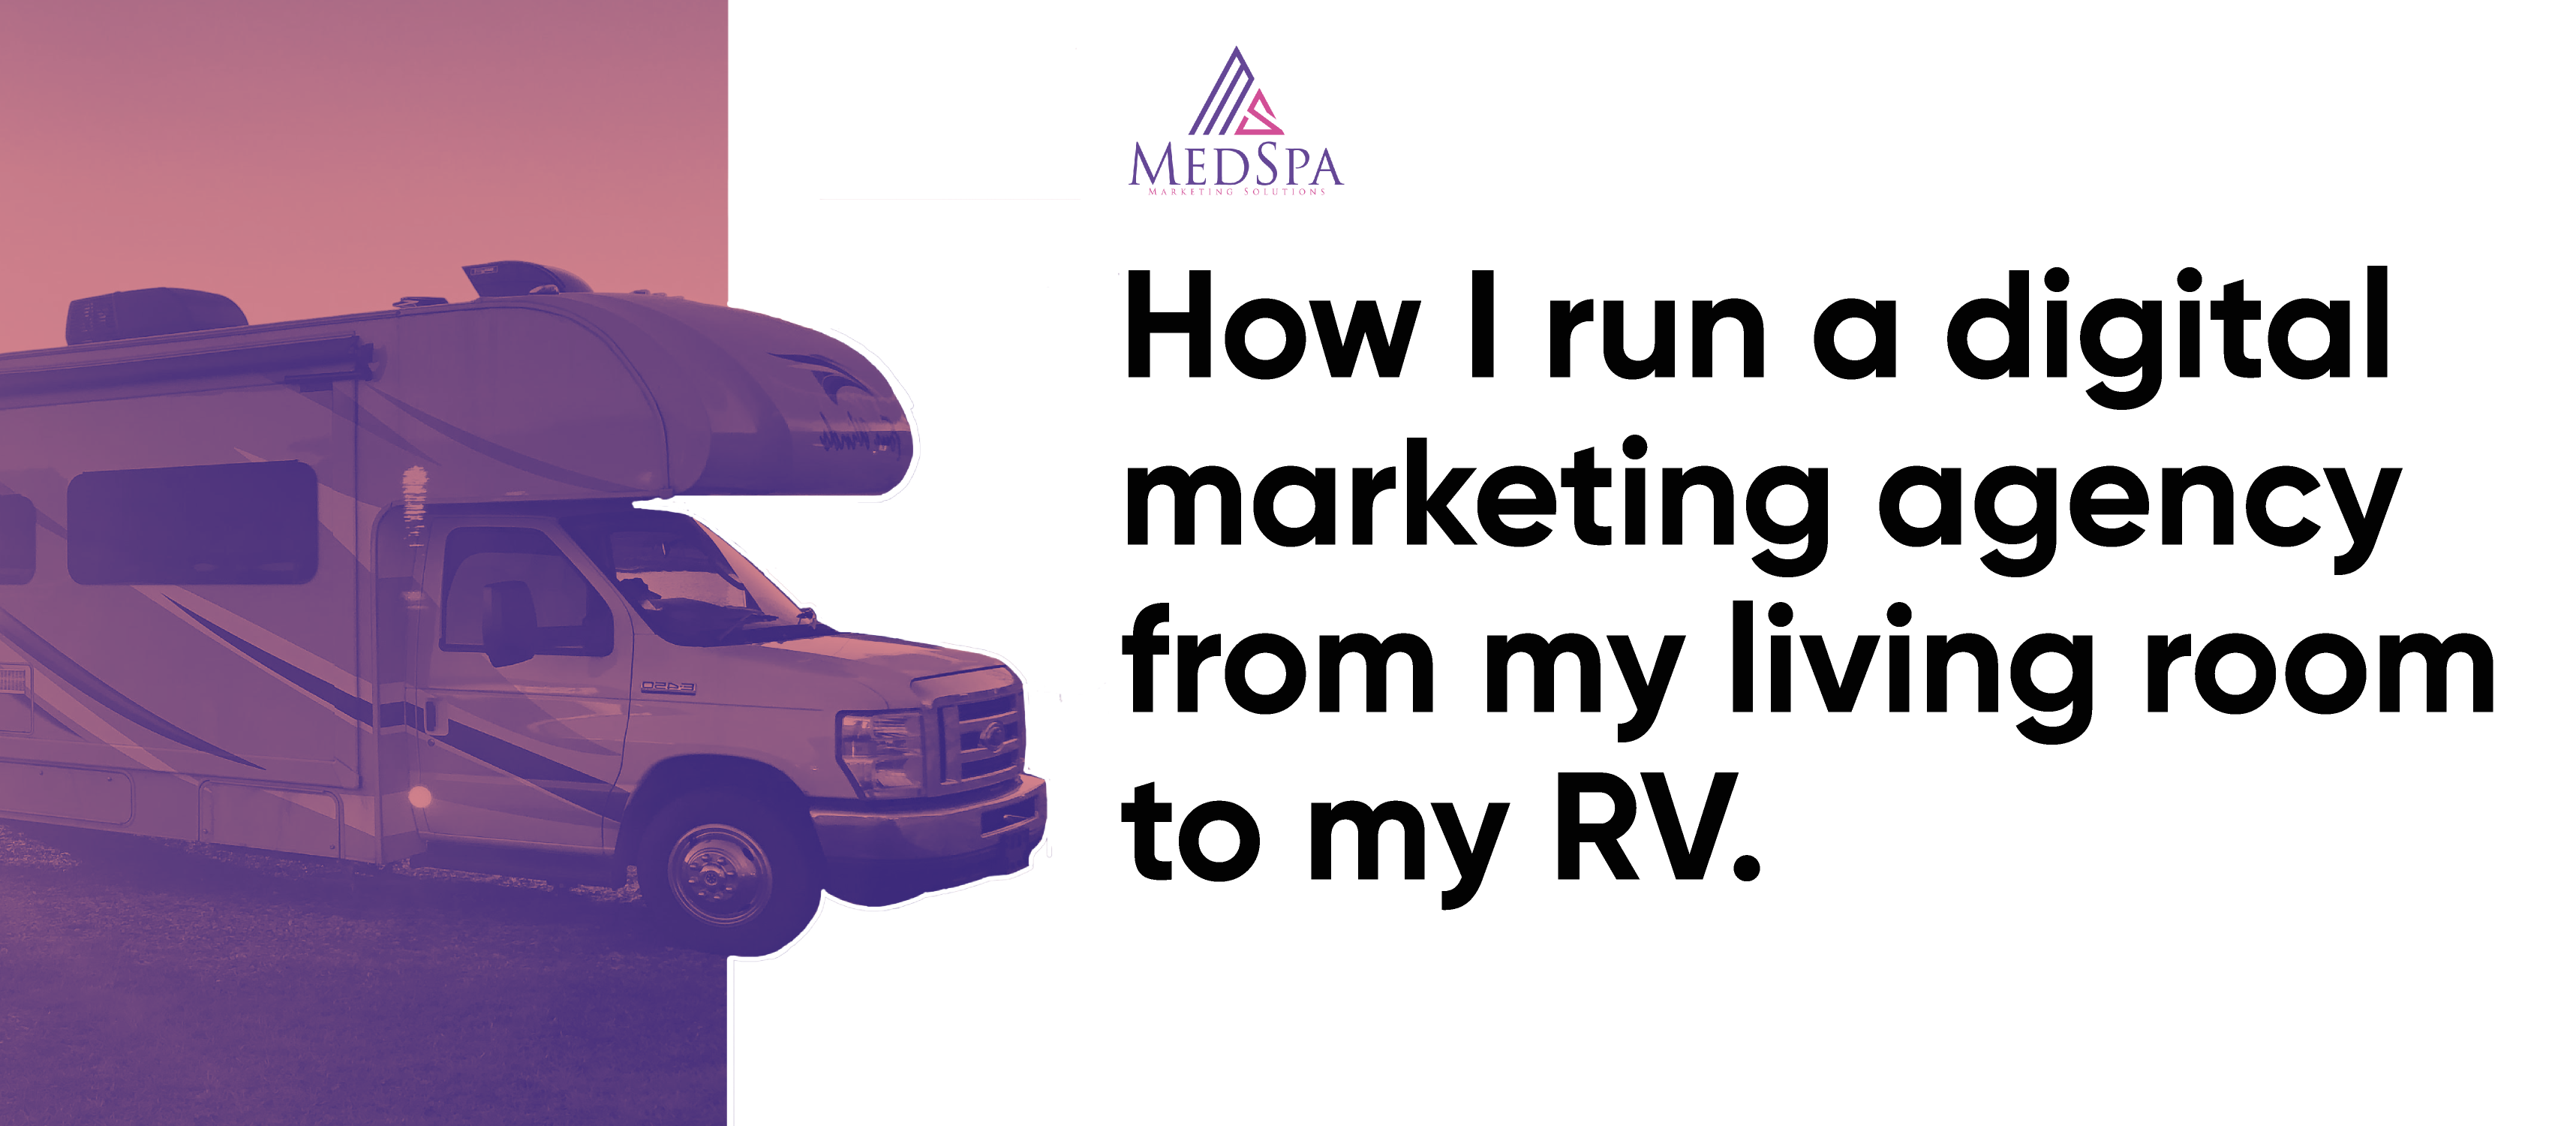 How I run a digital marketing agency, from my living room to my RV.